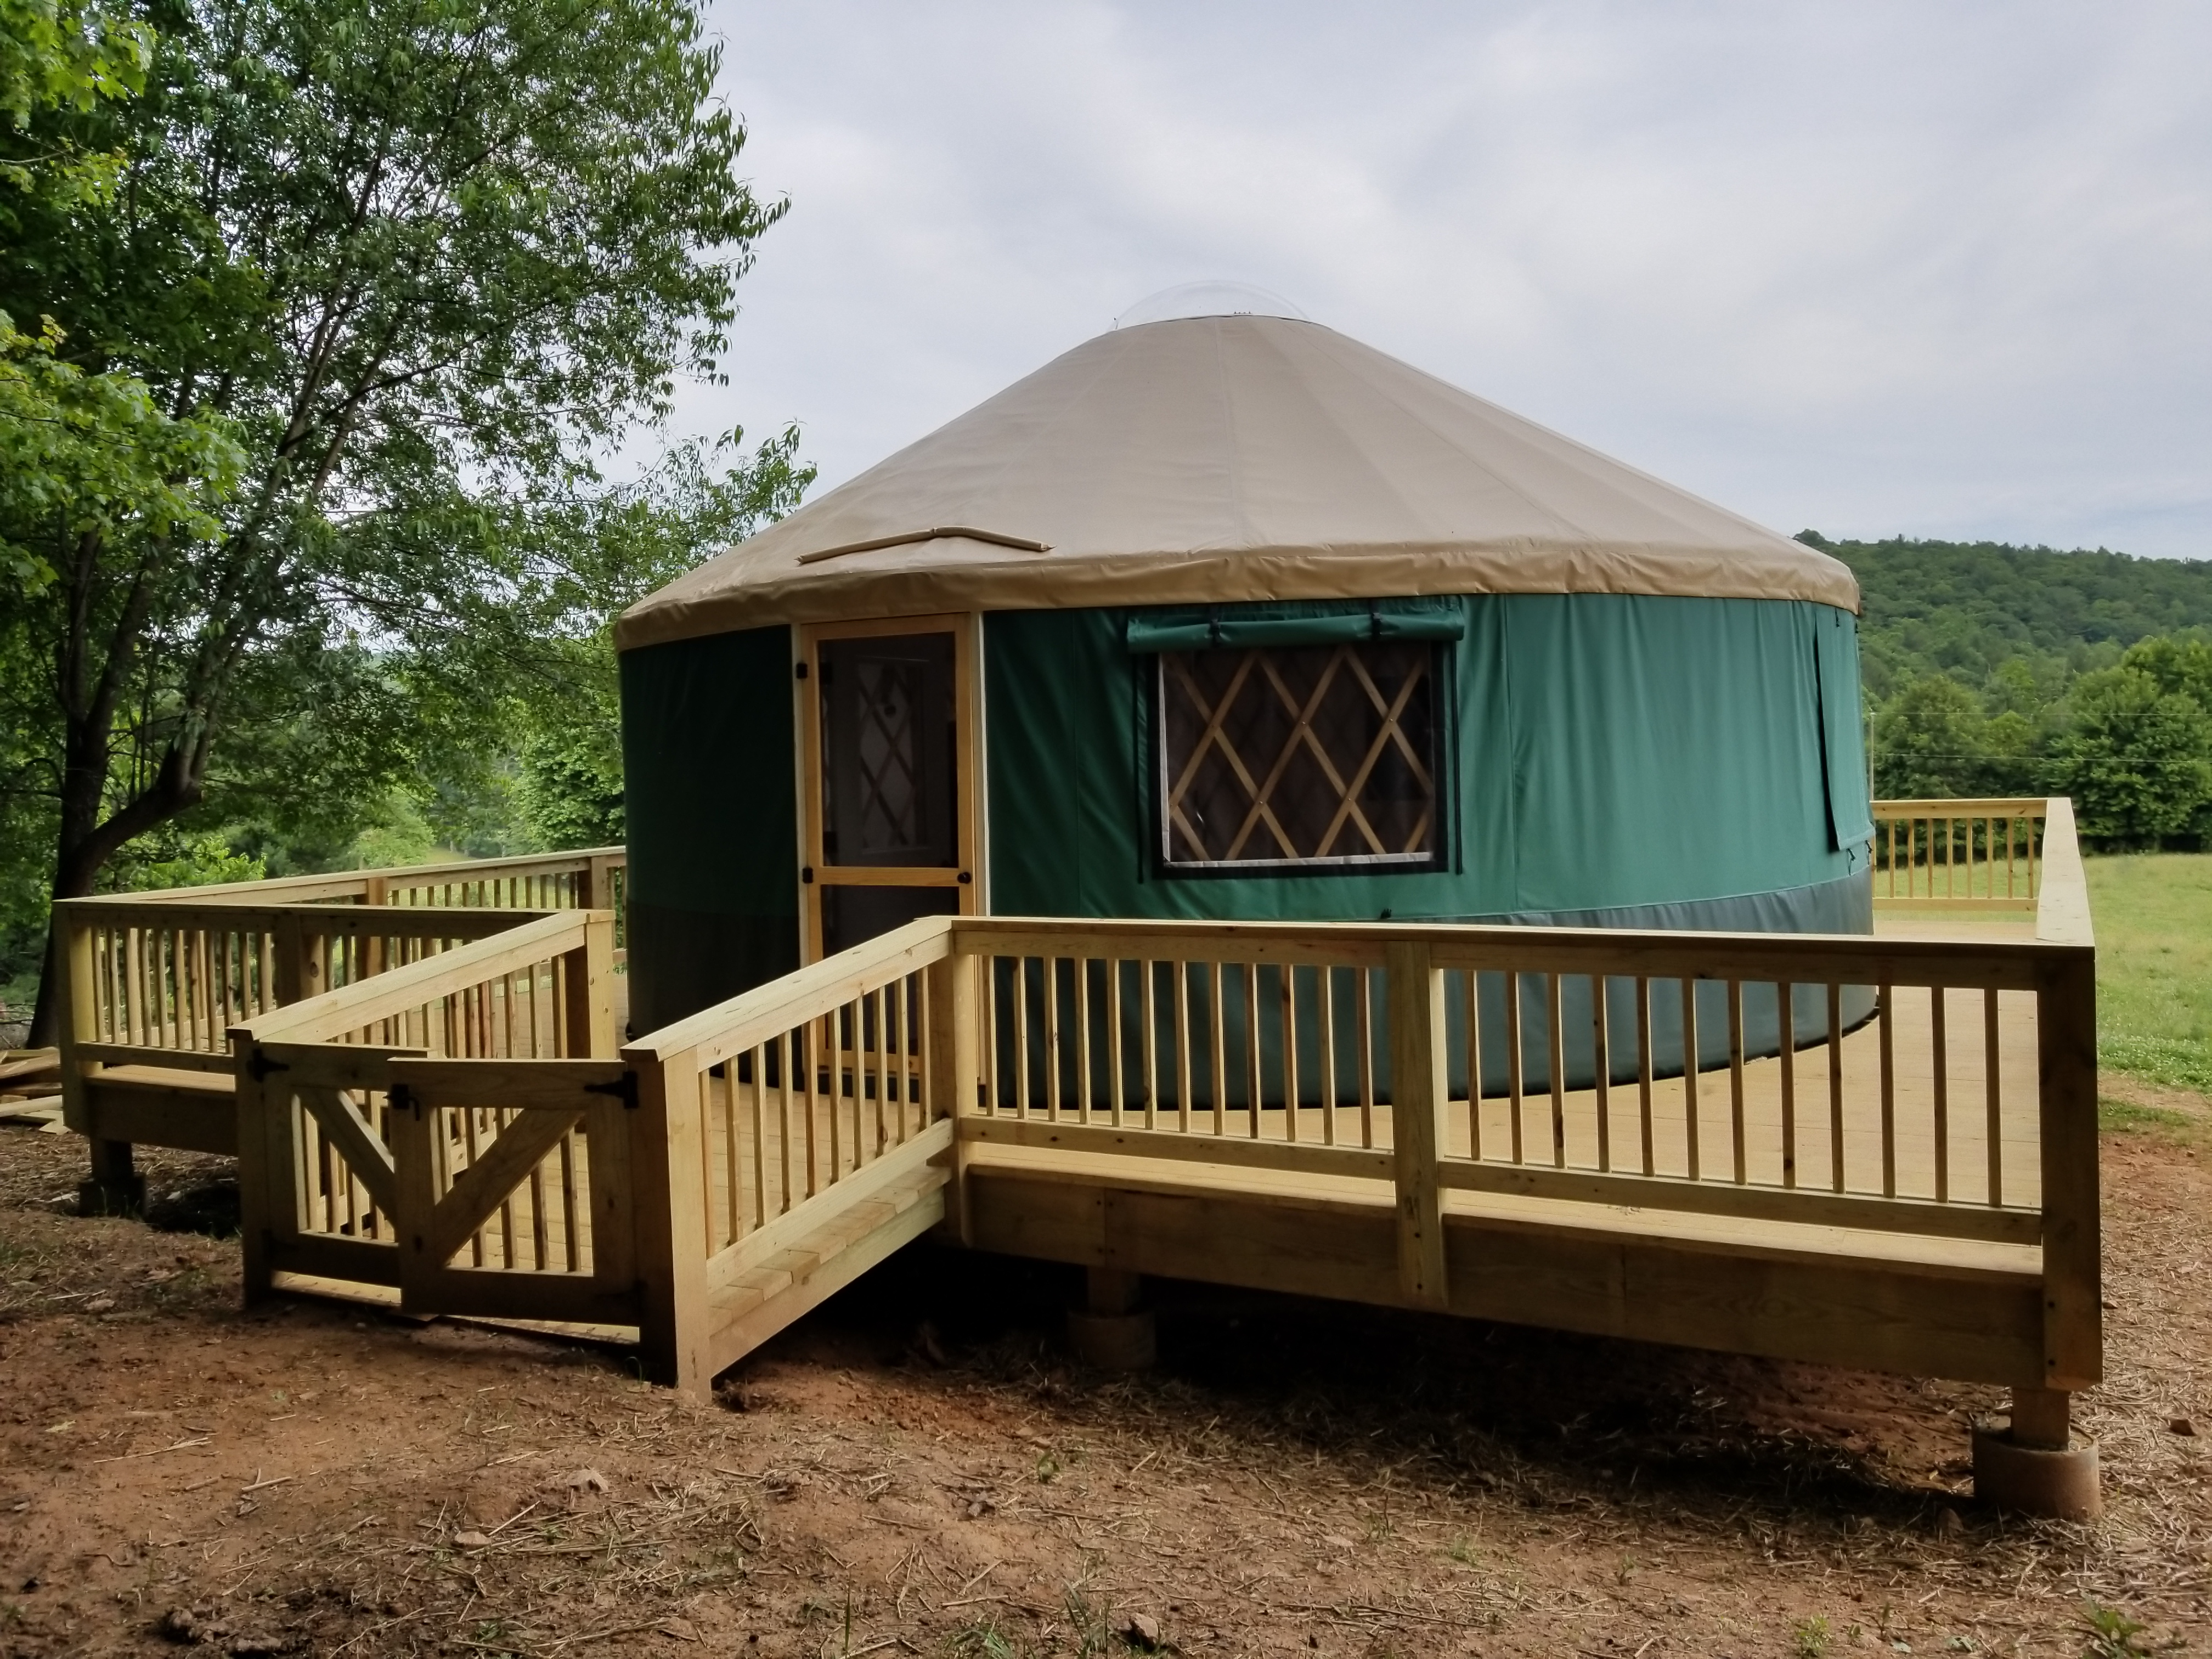 Our Yurts Blue Ridge Yurts New and used items, cars, real estate, jobs, services, vacation rentals and more virtually anywhere in canada. our yurts blue ridge yurts